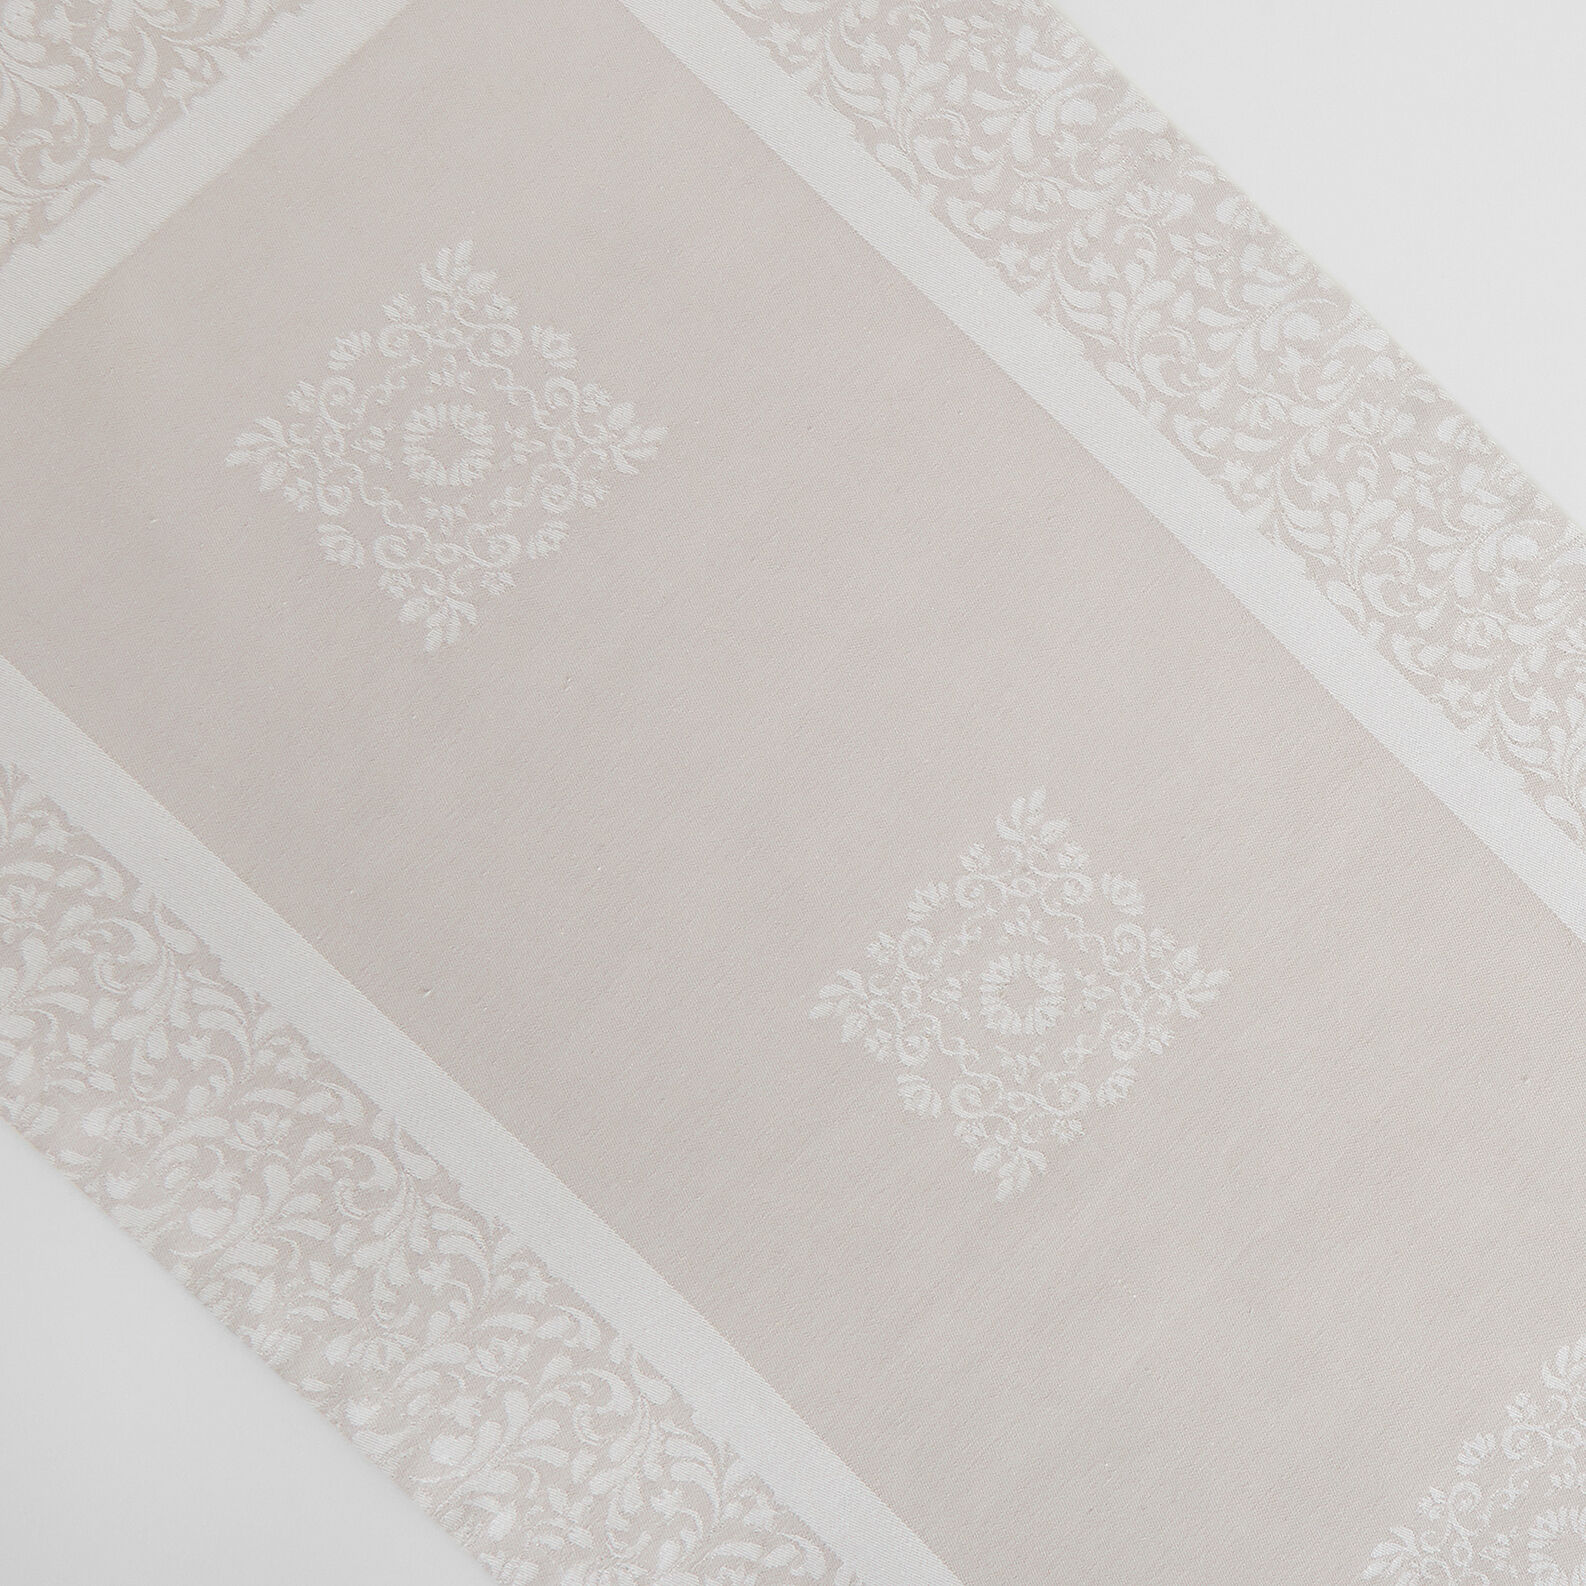 Table runner in 100% cotton jacquard